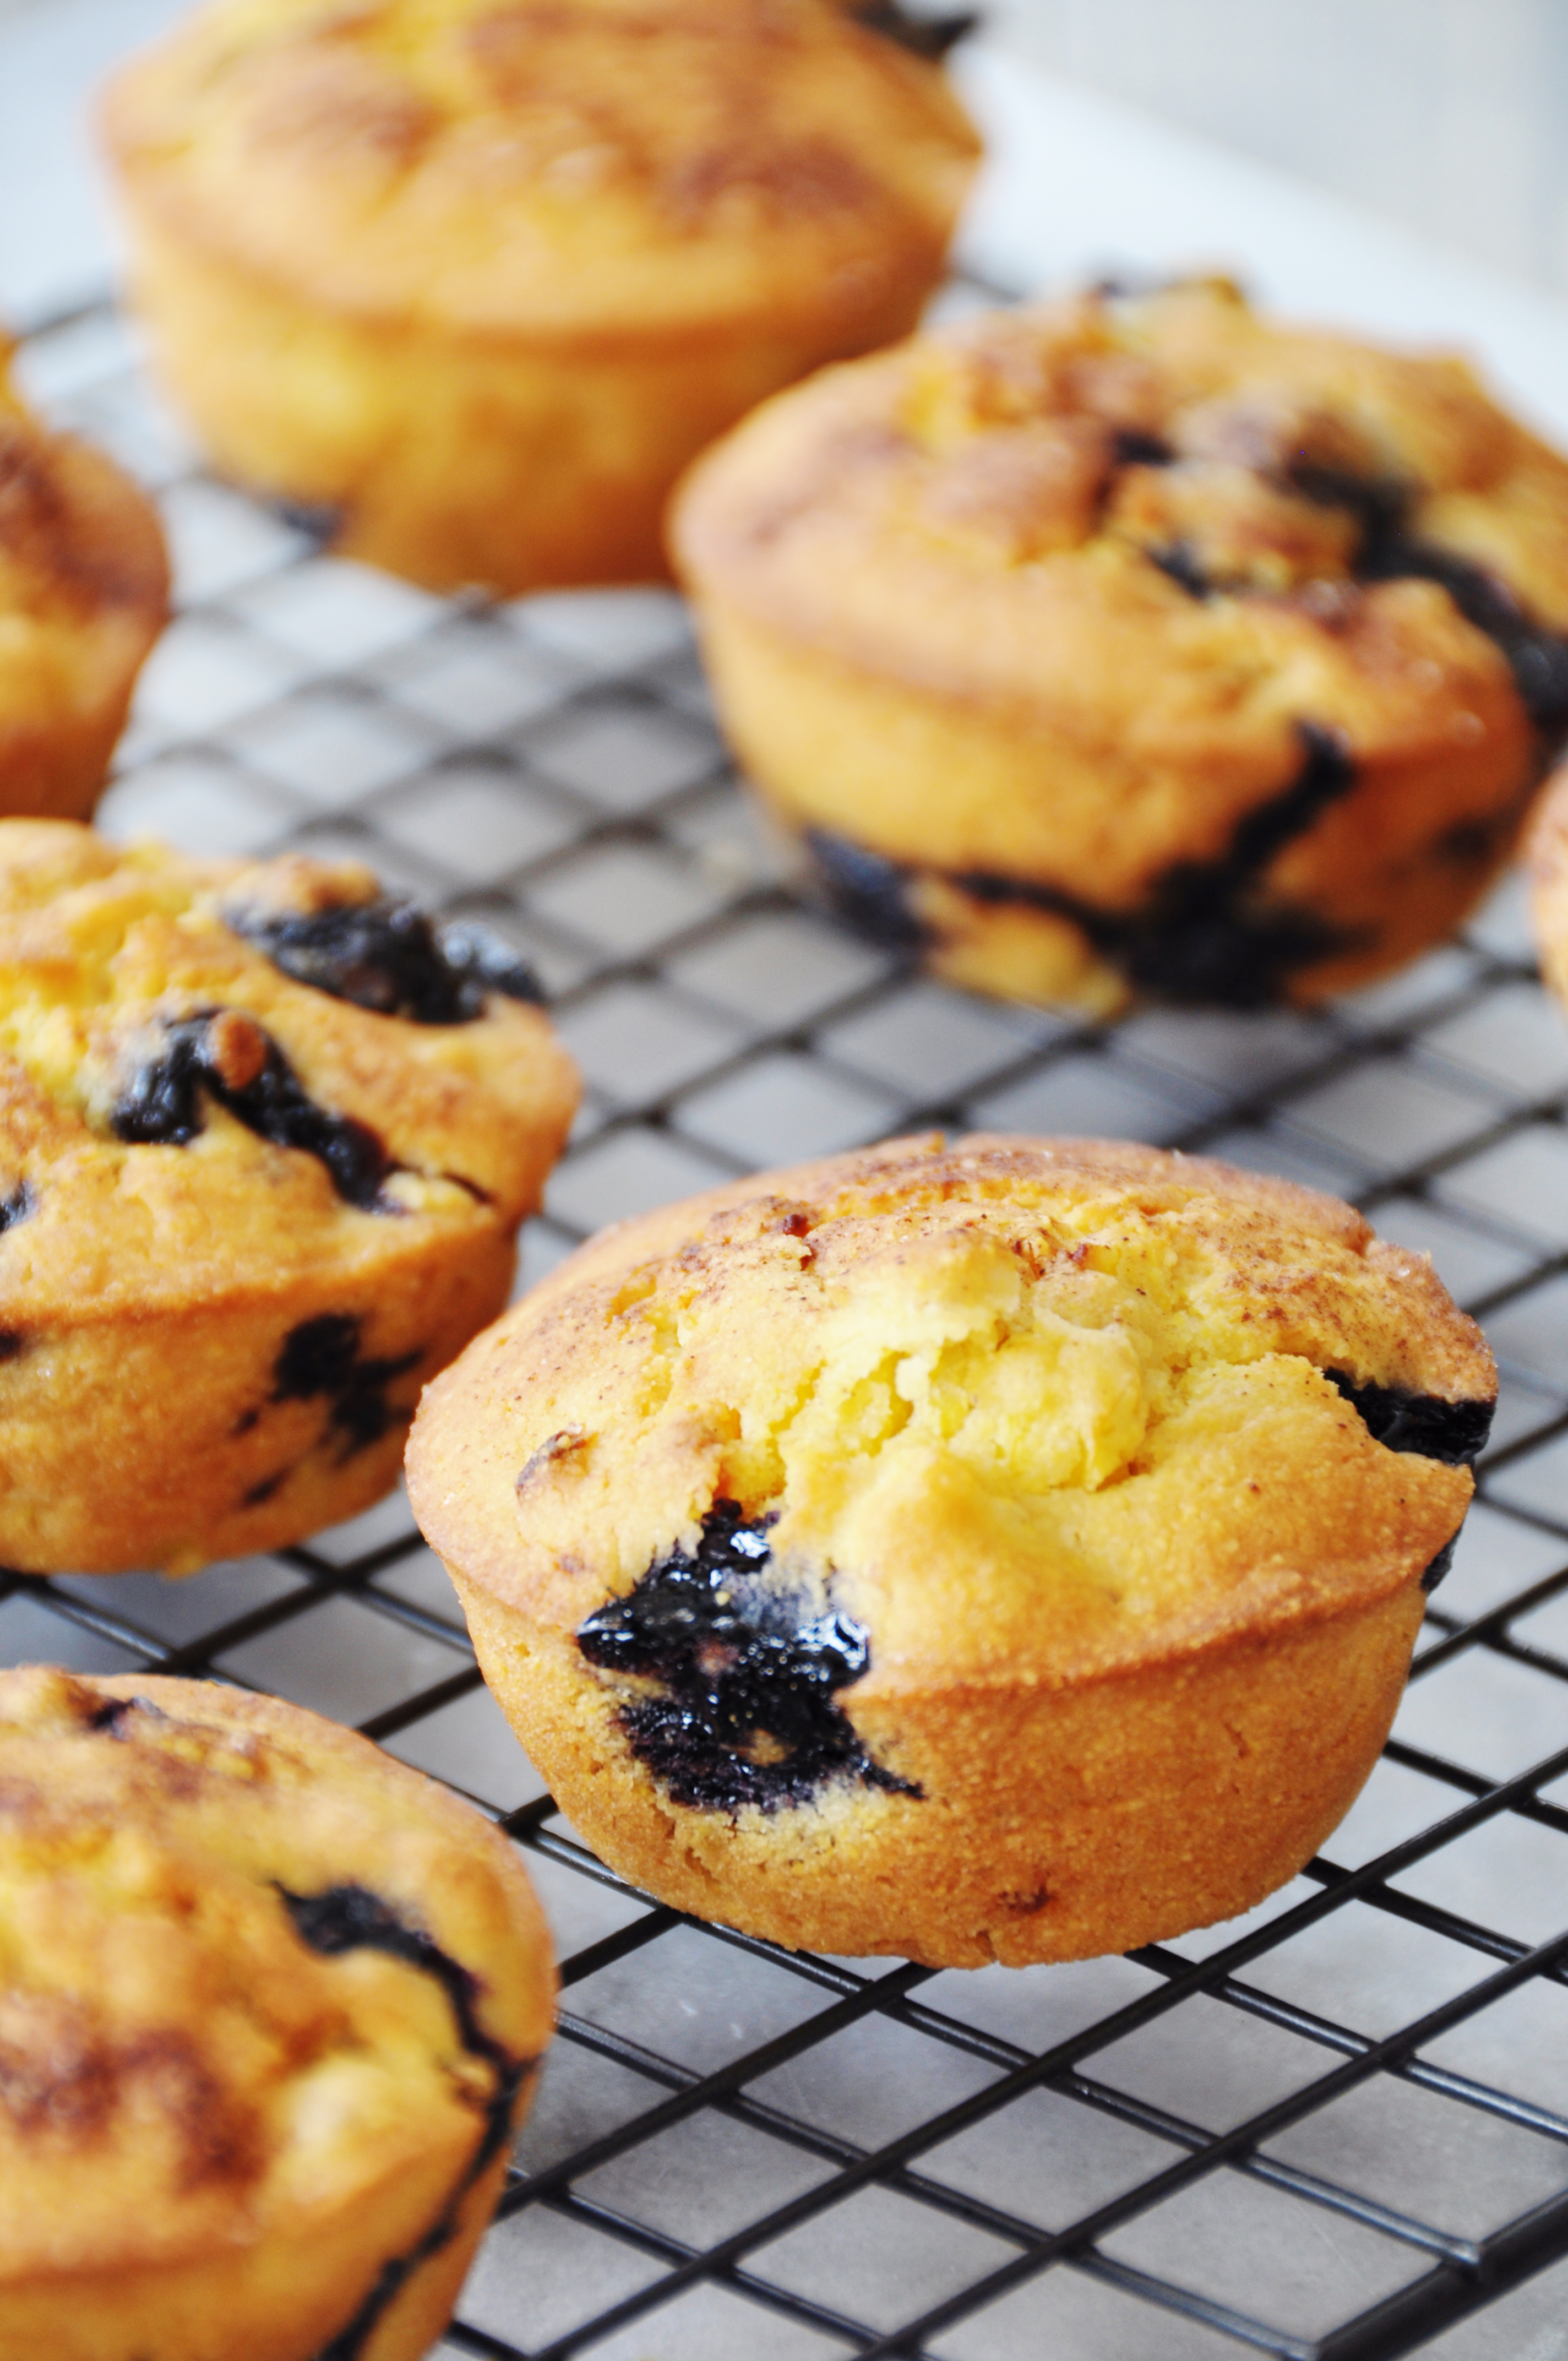 ... corn muffins. Most of the sweetness comes from the fruit and the corn